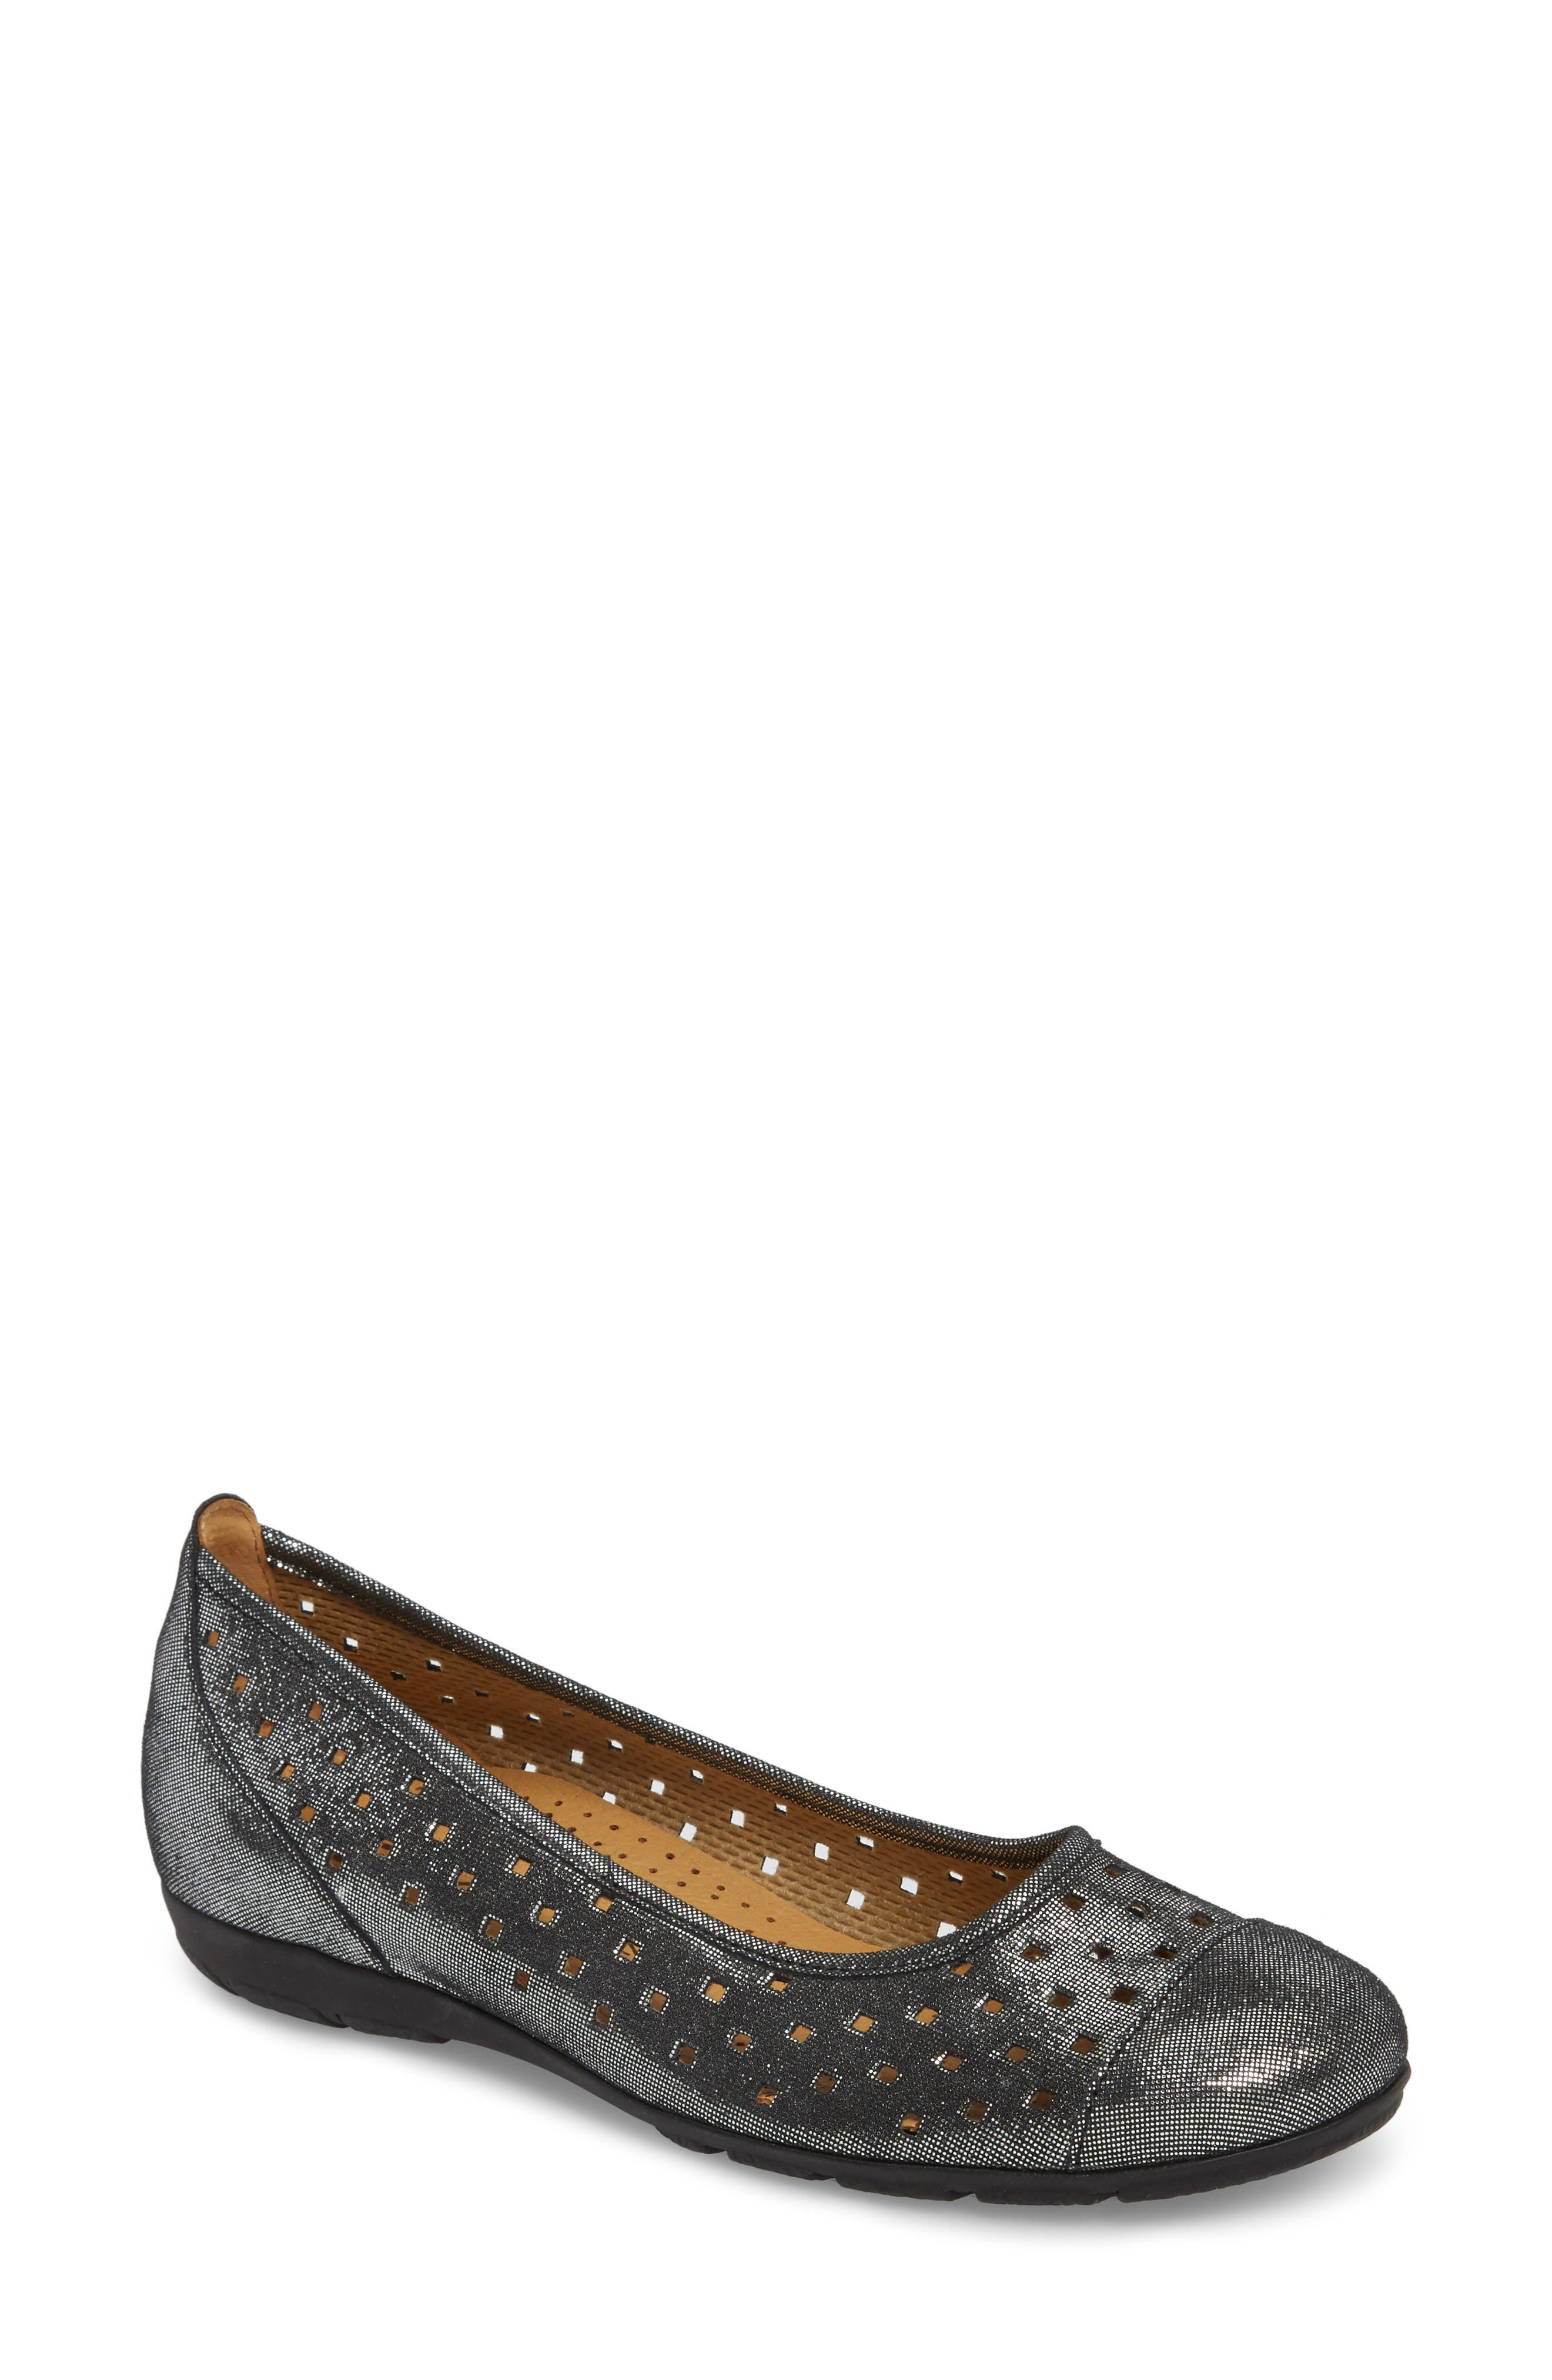 Perforated Ballet Flat,                         Main,                         color, BLACK METALLIC LEATHER